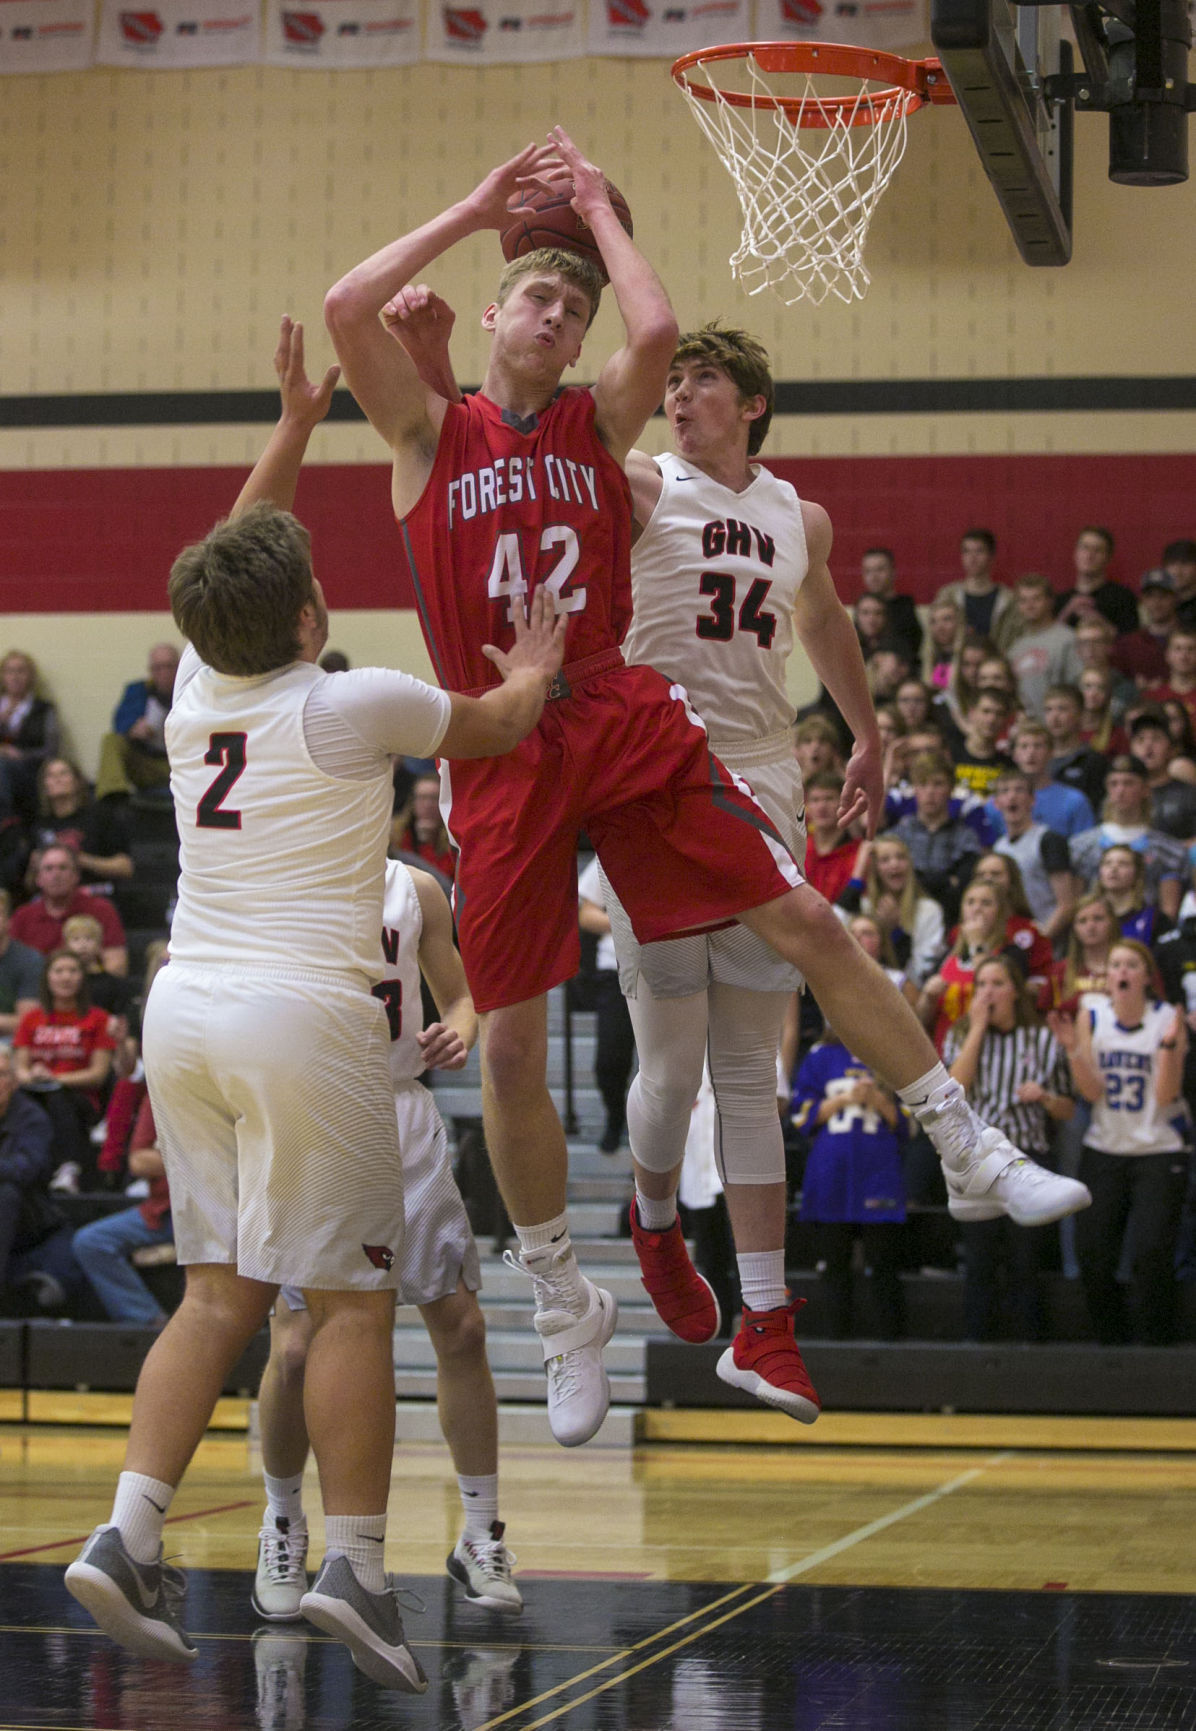 BBBall GHV vs. Forest City 1